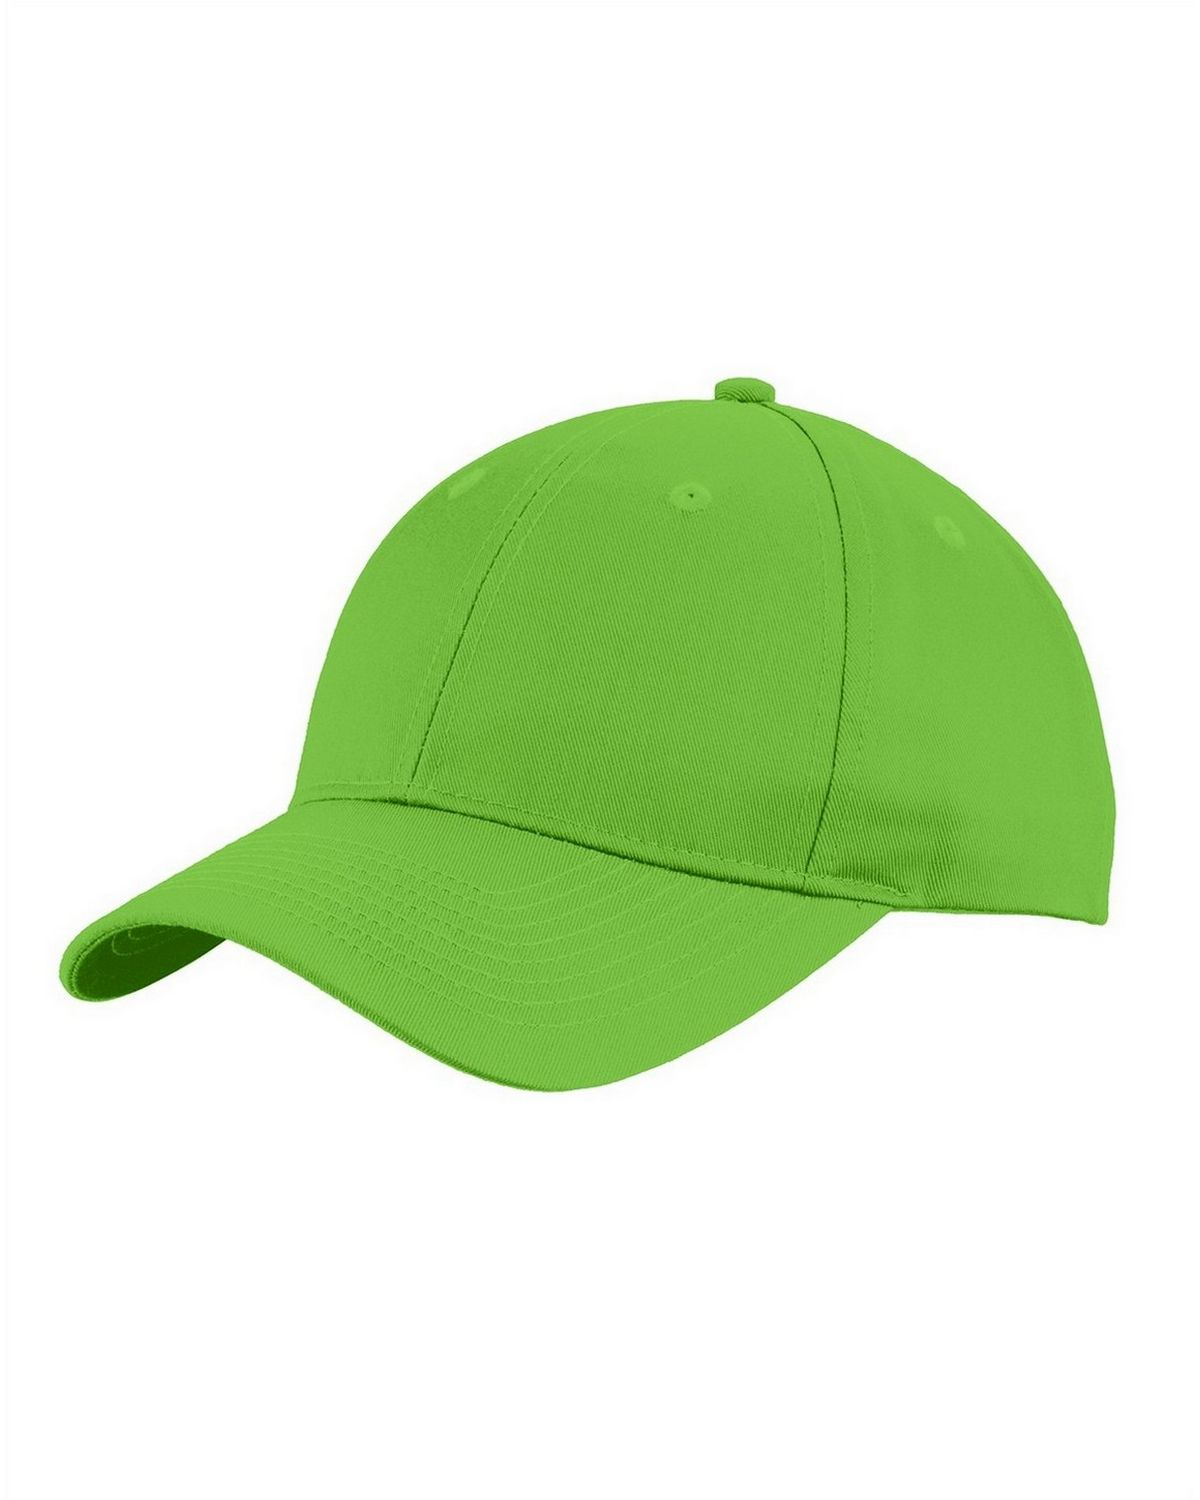 Port Authority C913 Uniforming Twill Unisex Cap - Lime - One Size from Port Authority